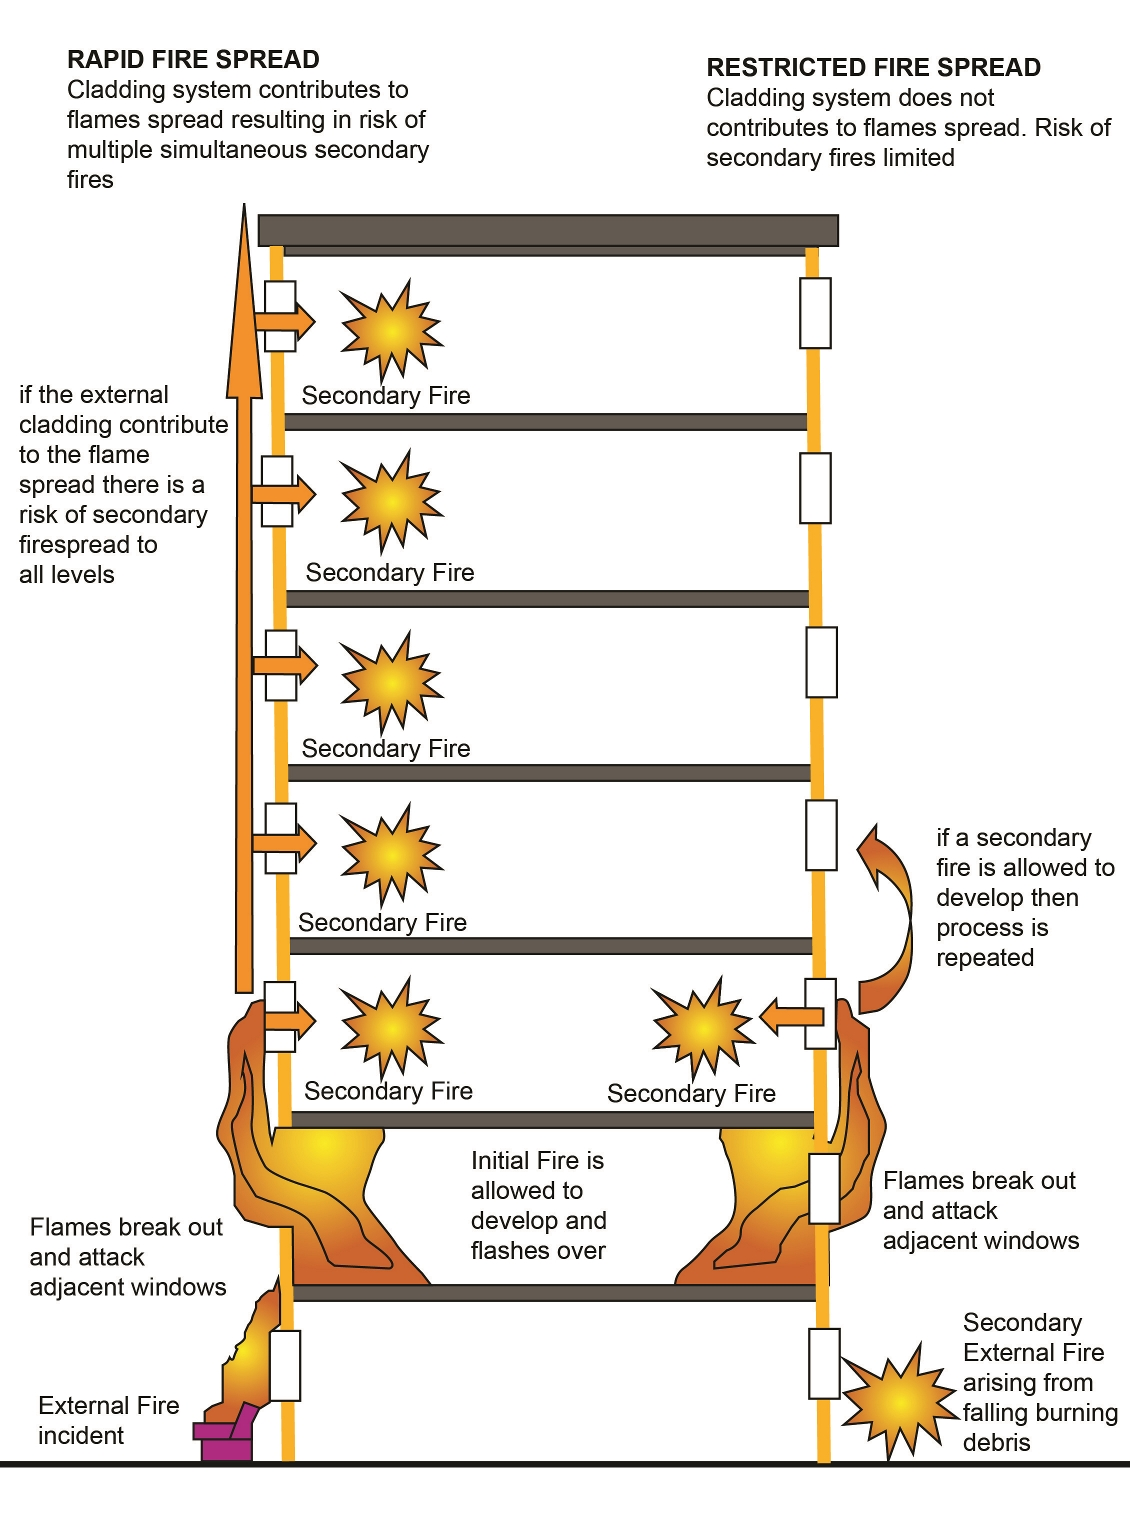 Infographic illustrates rapid fire spread in a high-rise building due to non-fire-resistant cladding panels and incorrect wall assembly